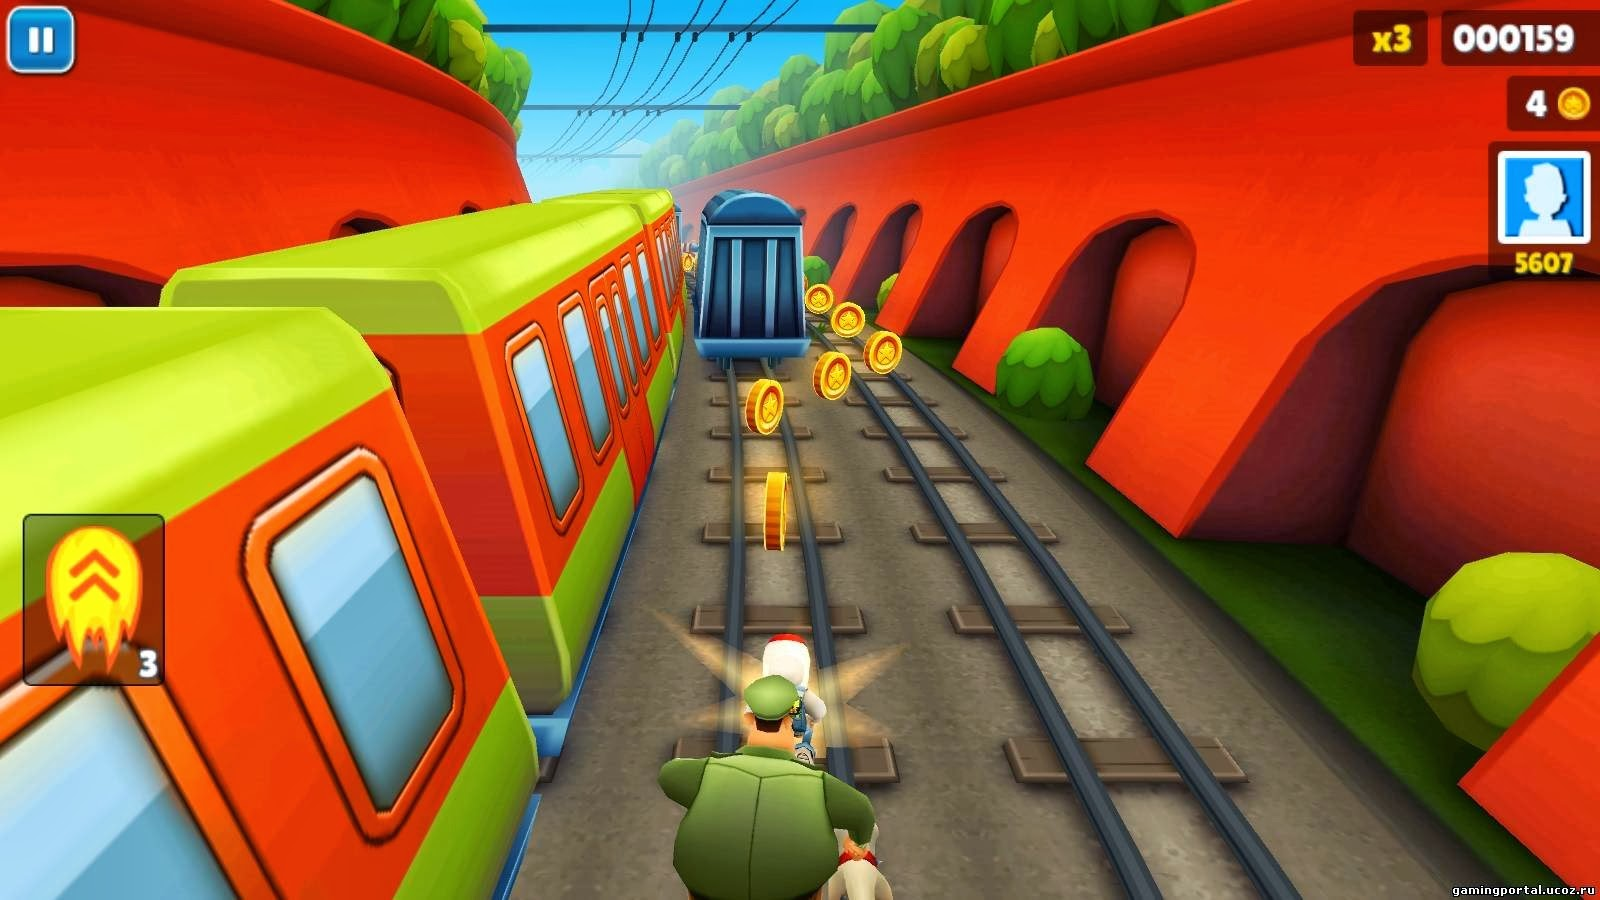 Subway Surfers for Android - APK Download - APKPurecom